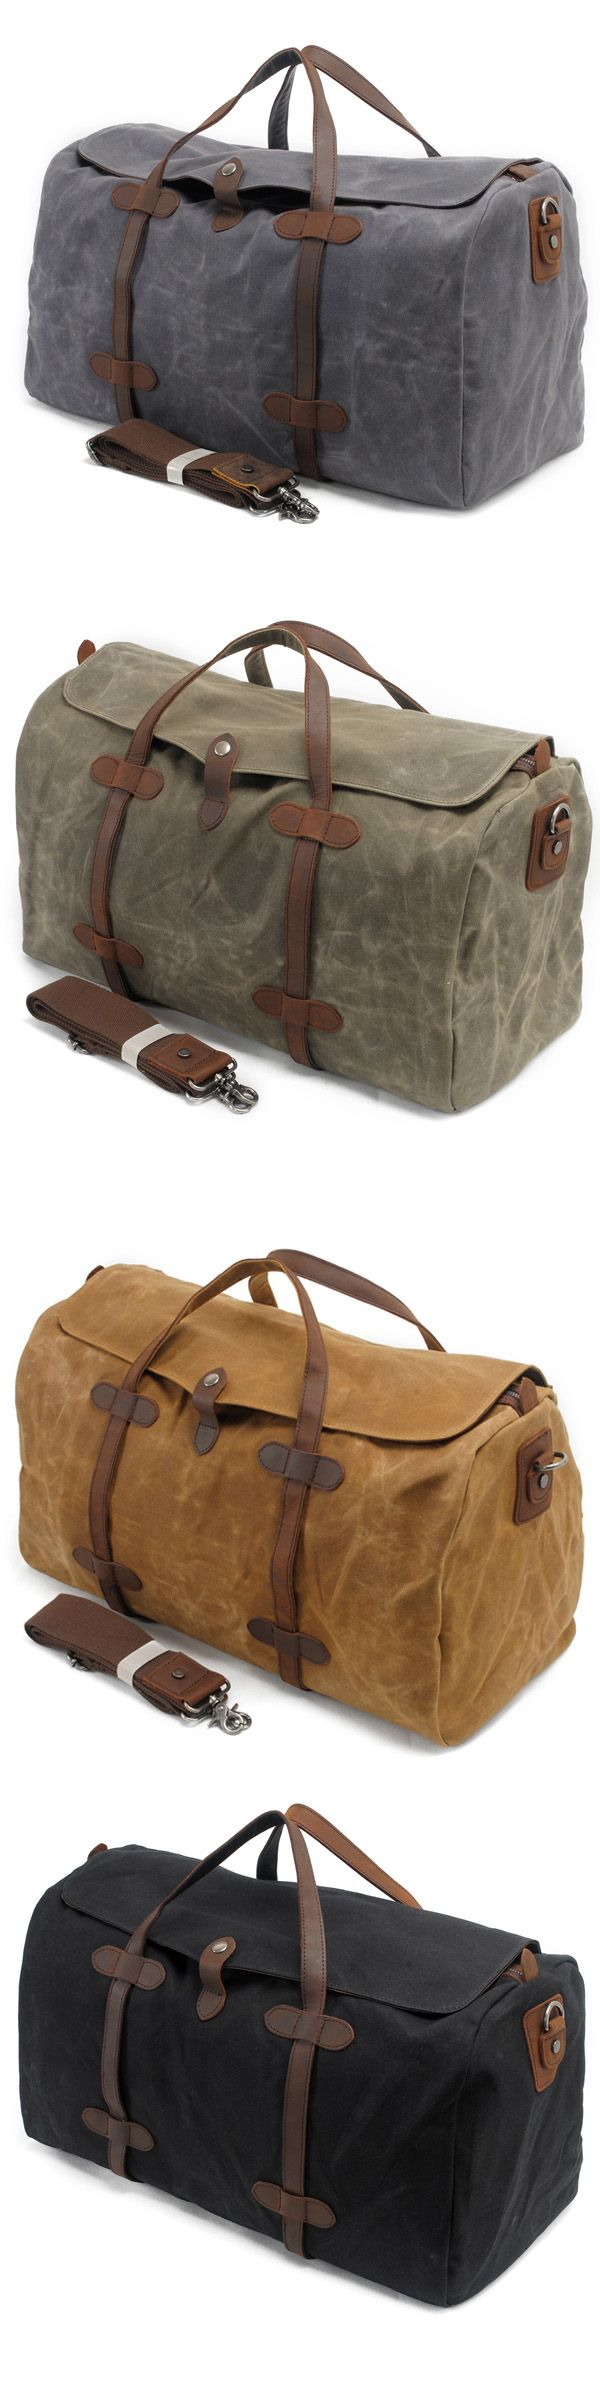 [46%OFF] Batik Canvas Holdall Bag Big Capacity Bucket Bag Waterproof Crossbody Bag For Men